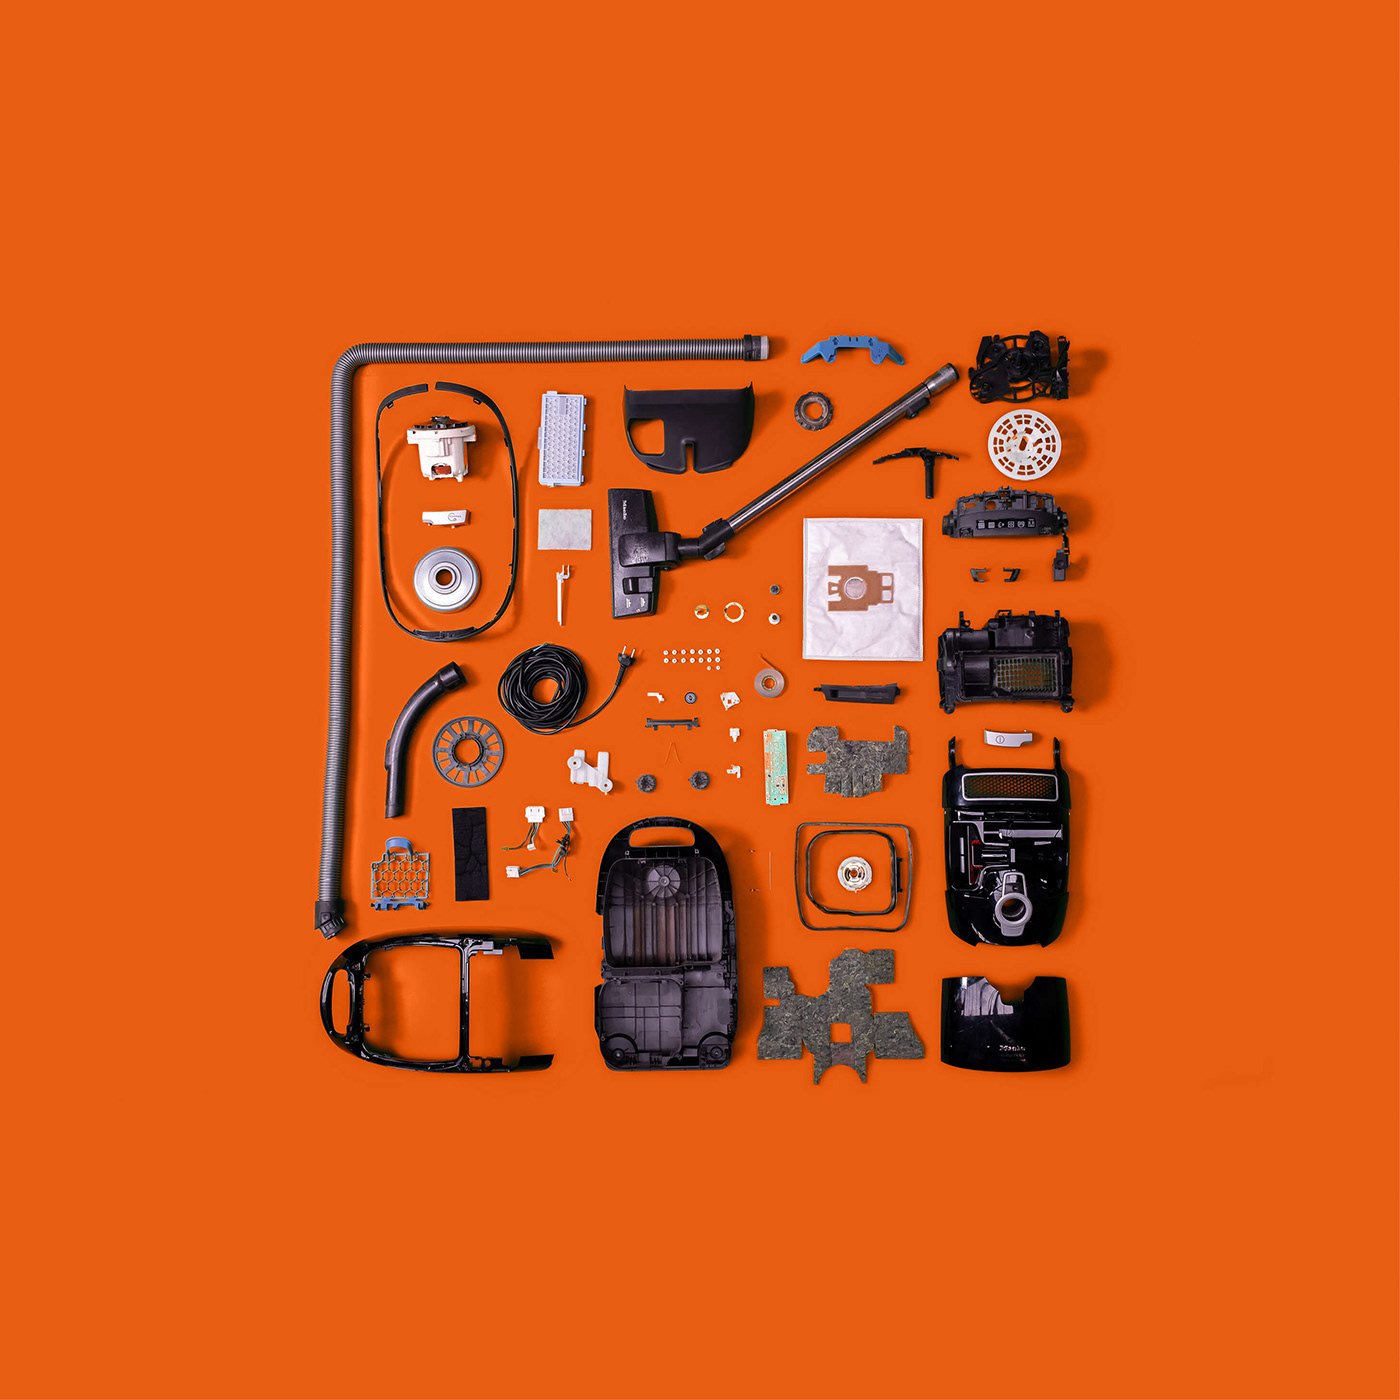 nthnrs design graphic Photography  Knolling weeelectric brandwebbing electric machines deconstruct